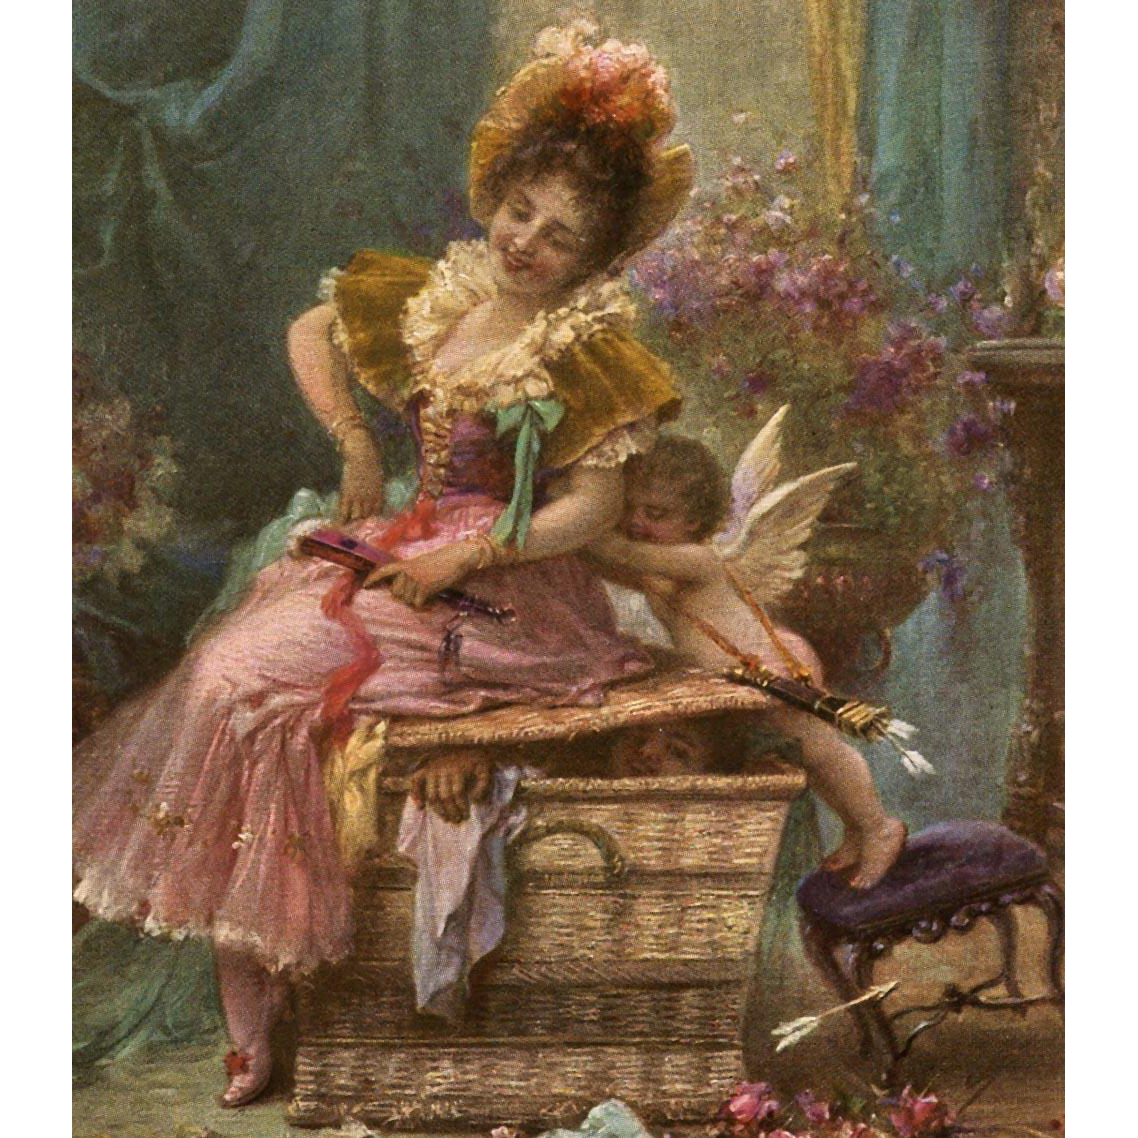 Cupid Pushing Lady off Huge Basket Zatzka French Art Postcard from Polish Count's Collection